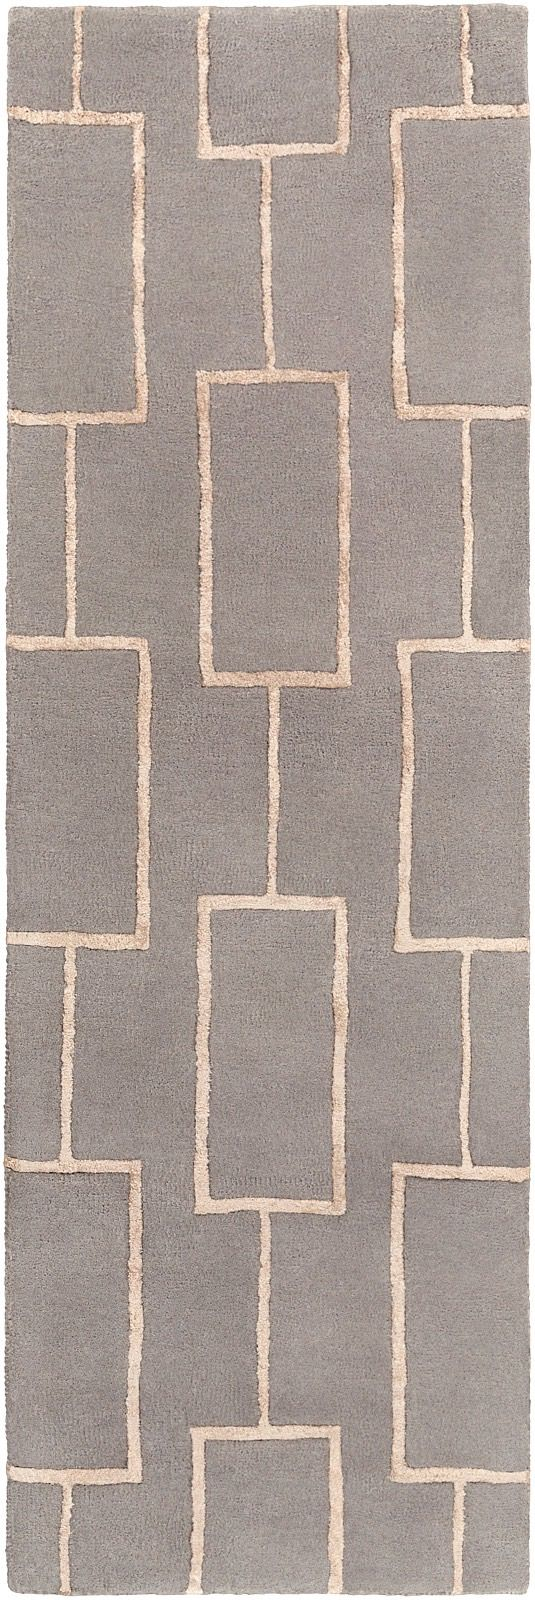 surya skyline contemporary area rug collection